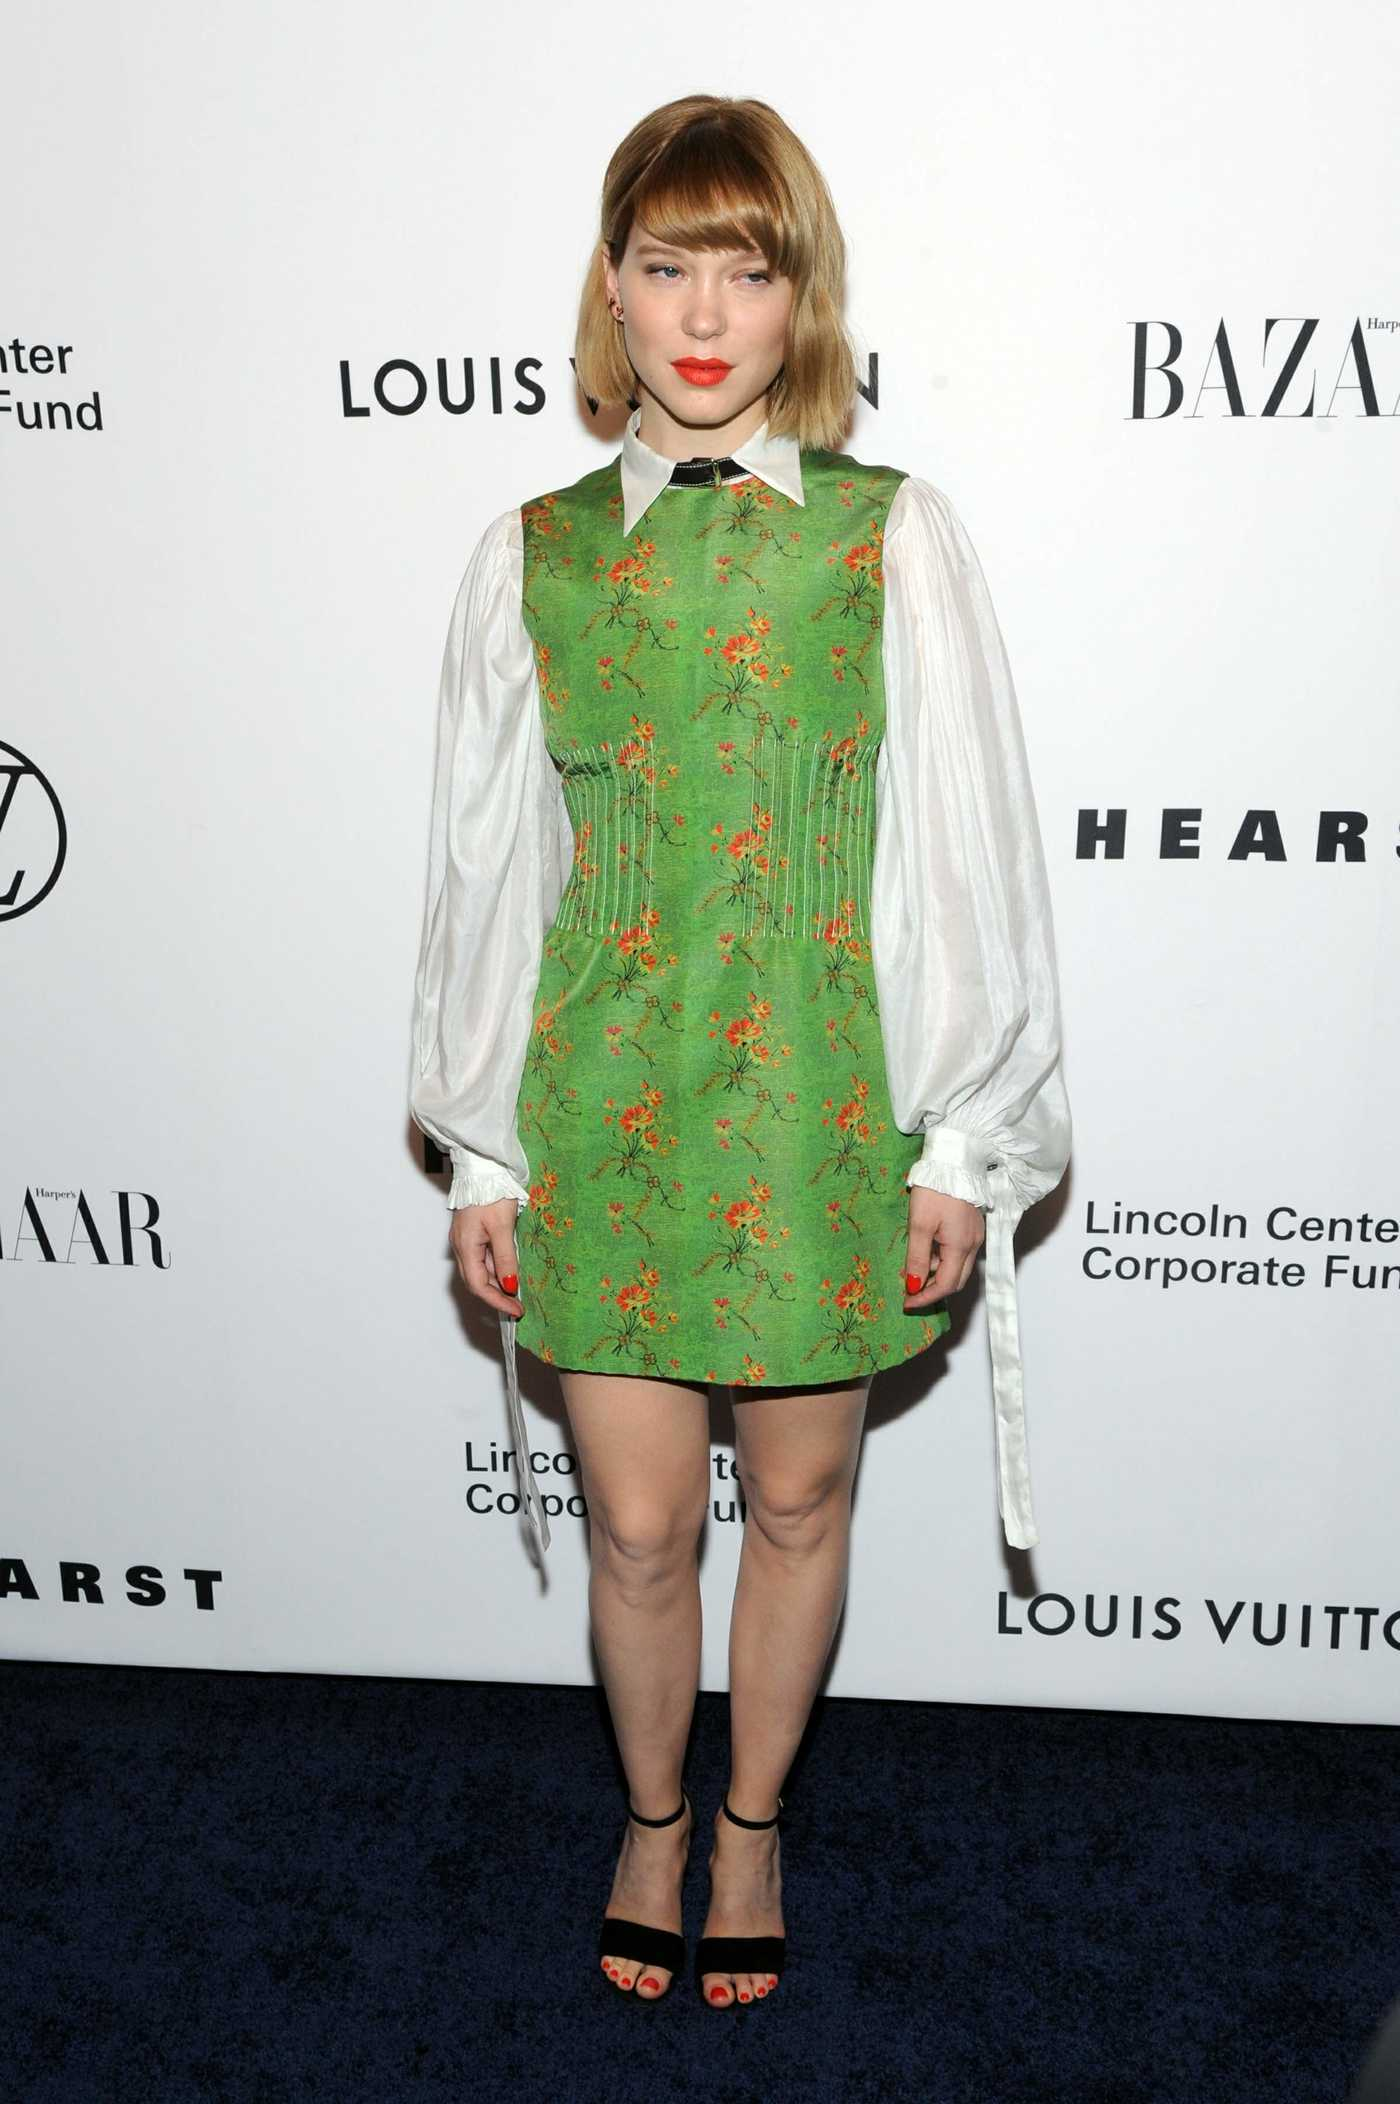 Lea Seydoux Attends an Evening Honoring Louis Vuitton and Nicolas Ghesquiere in New York City 11/30/2017